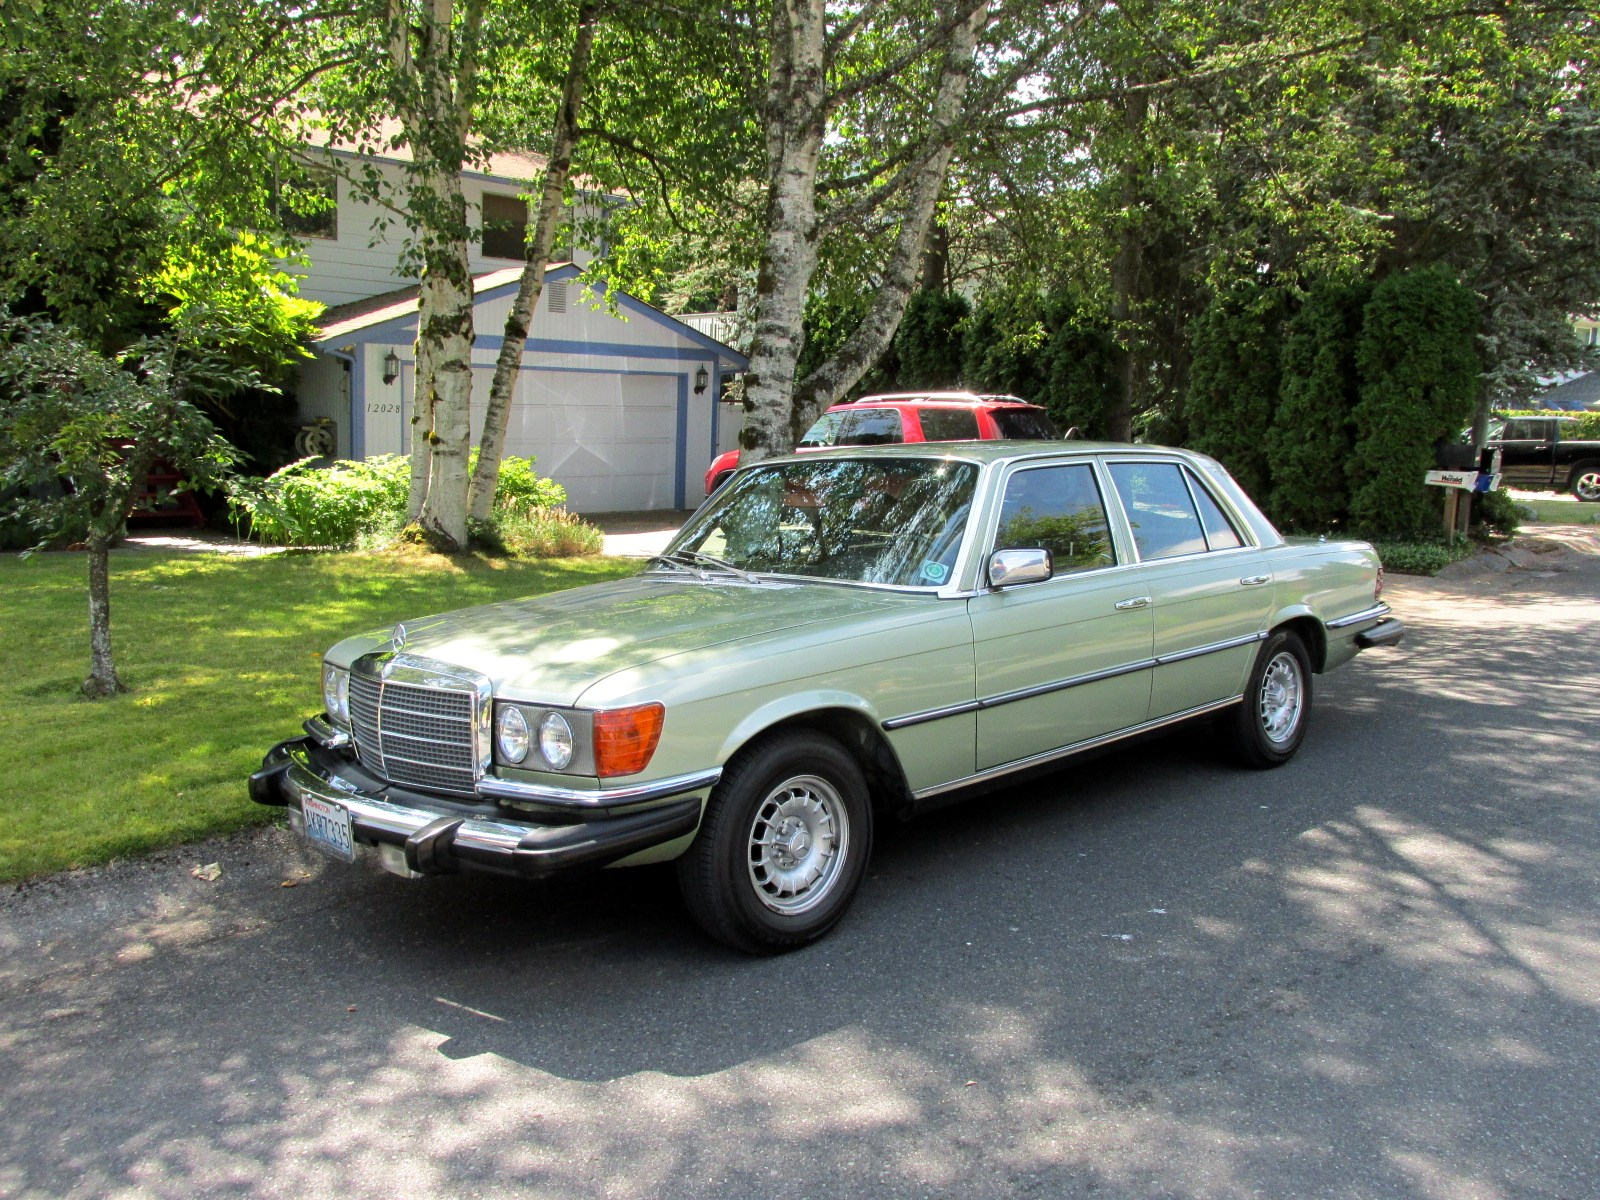 Seattle 39 s classics 1980 mercedes benz 300sd for 1980 mercedes benz 300sd